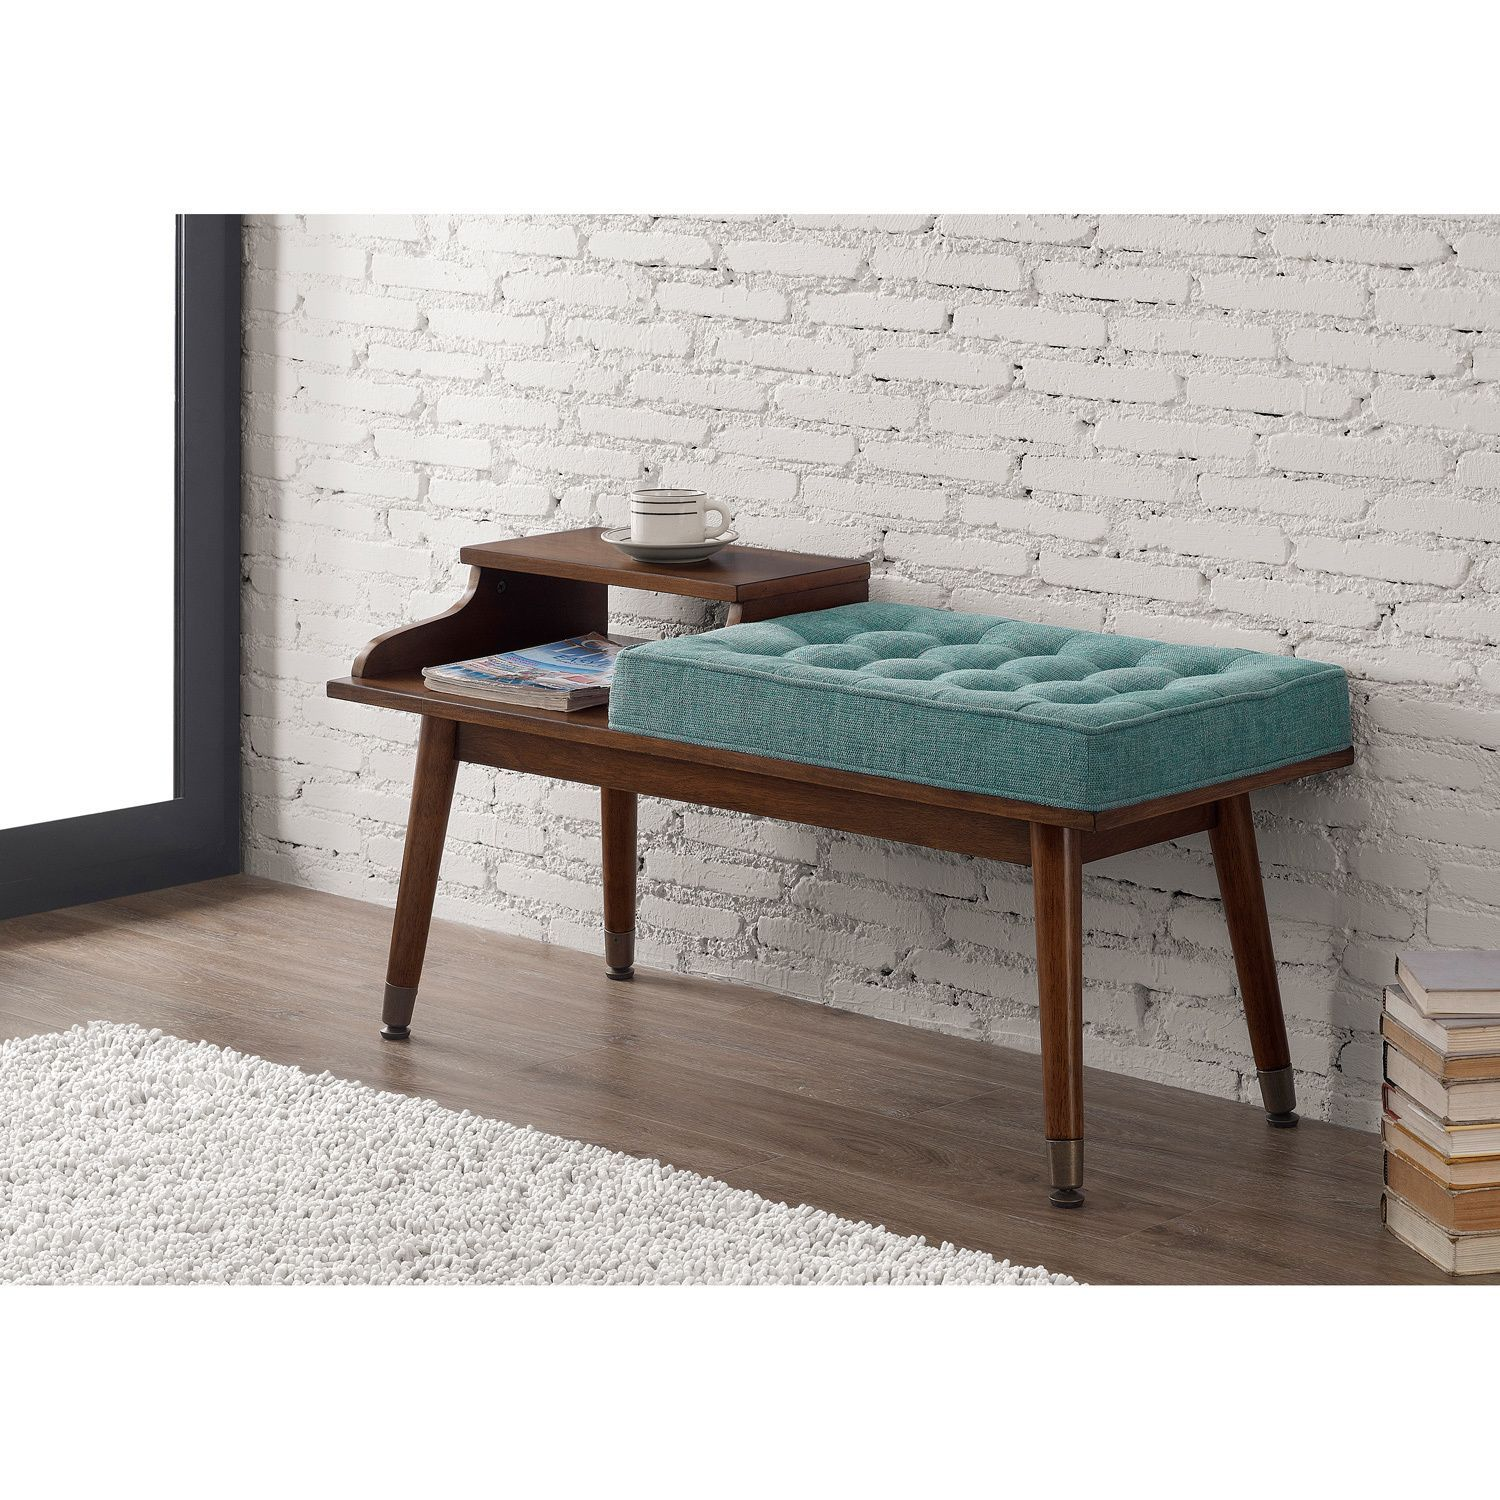 Mid Century Style Tufted Telephone Bench Teal By I Love Living Aqua Color Walnut Wood And